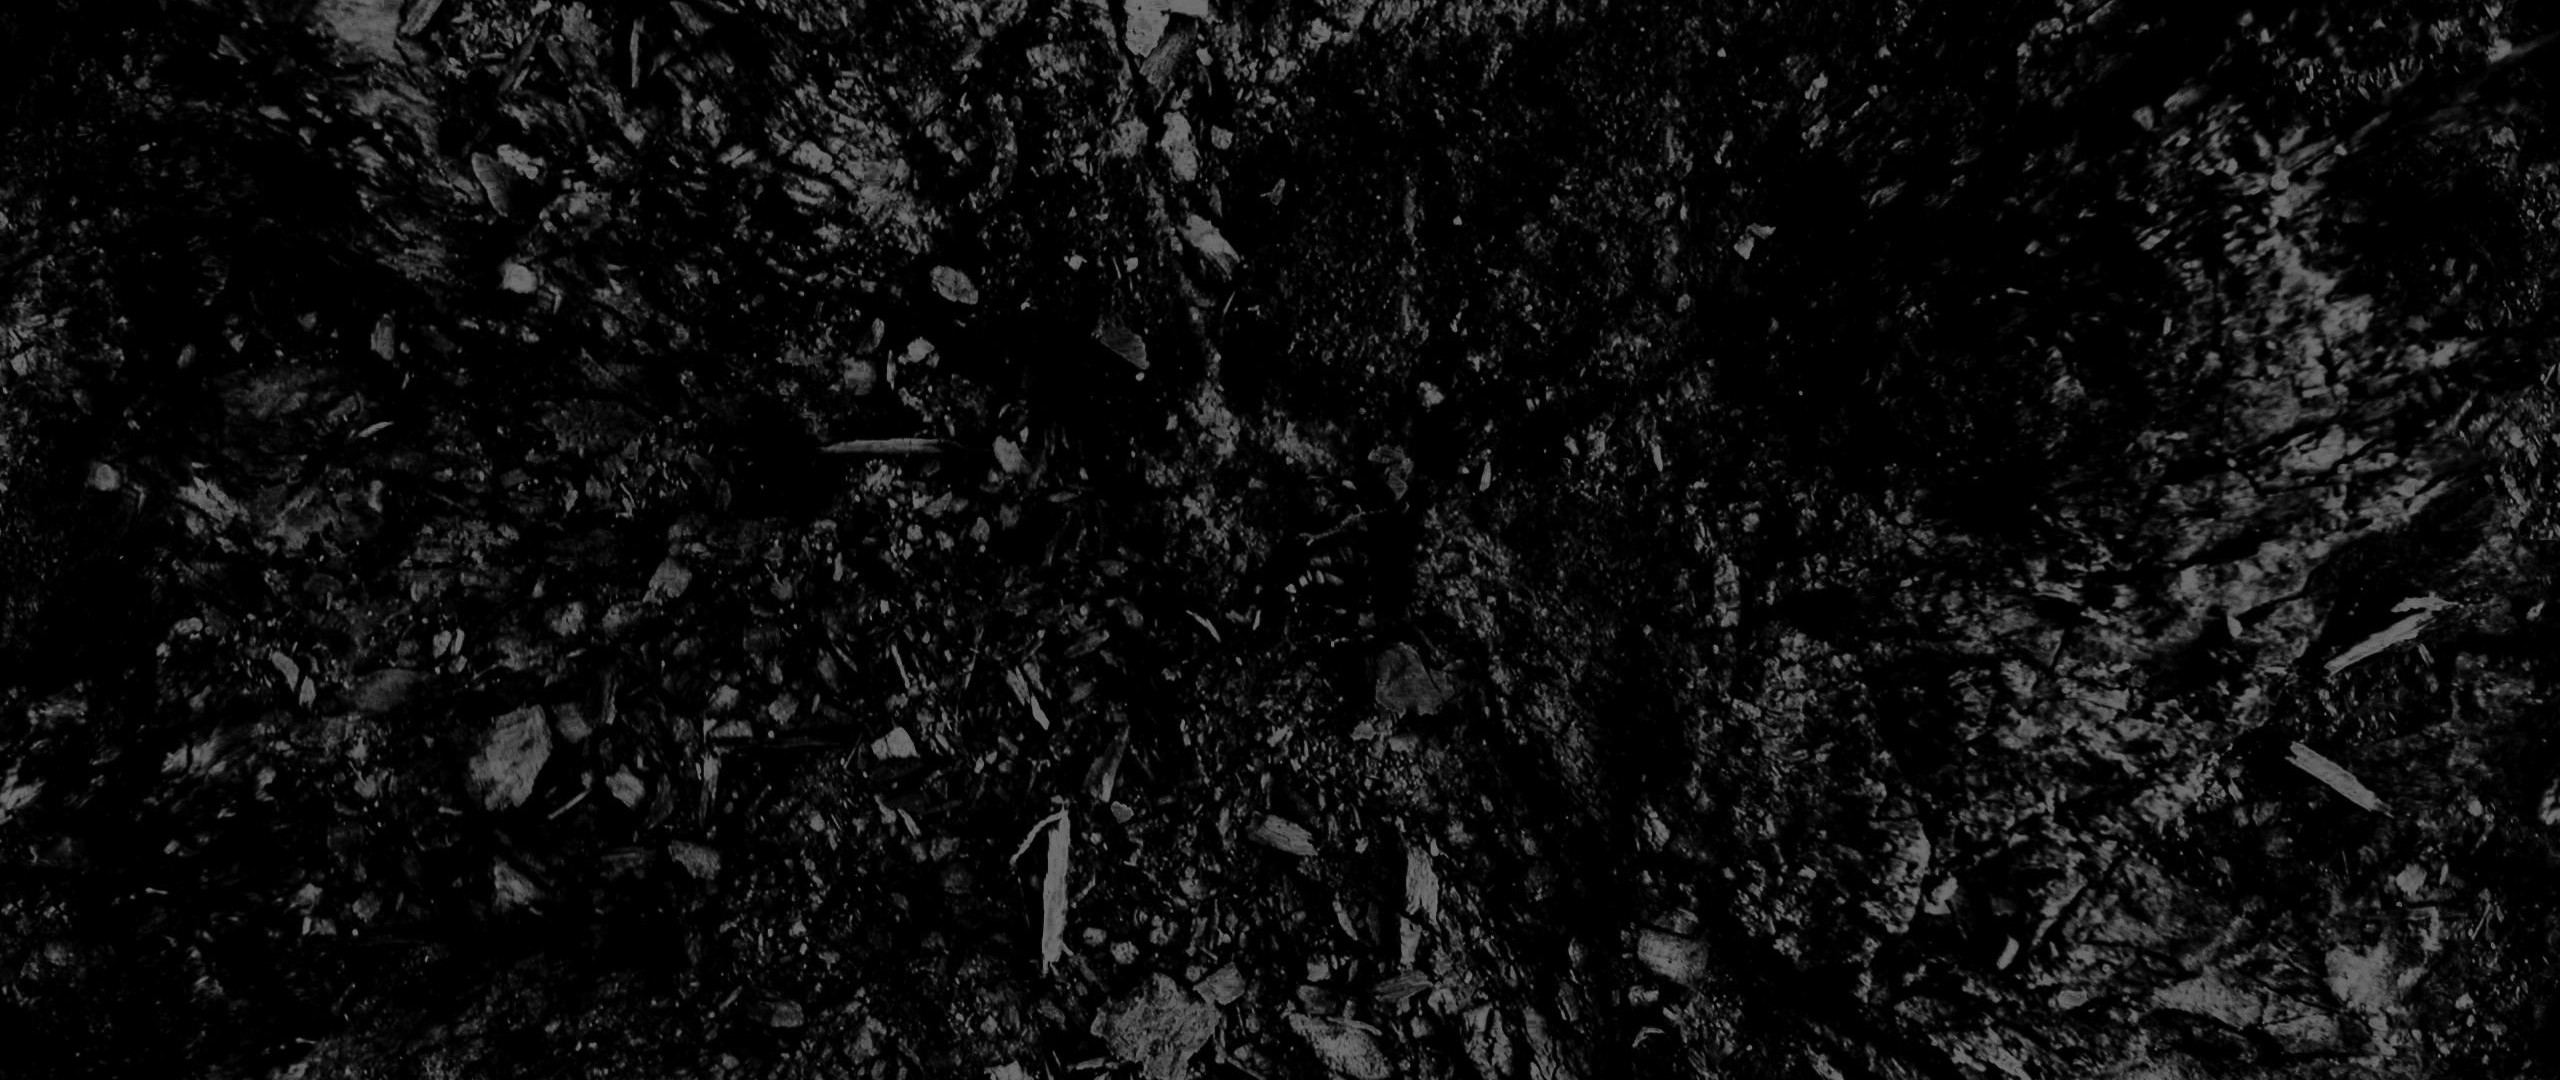 Preview wallpaper dark, black and white, abstract, black background  2560×1080